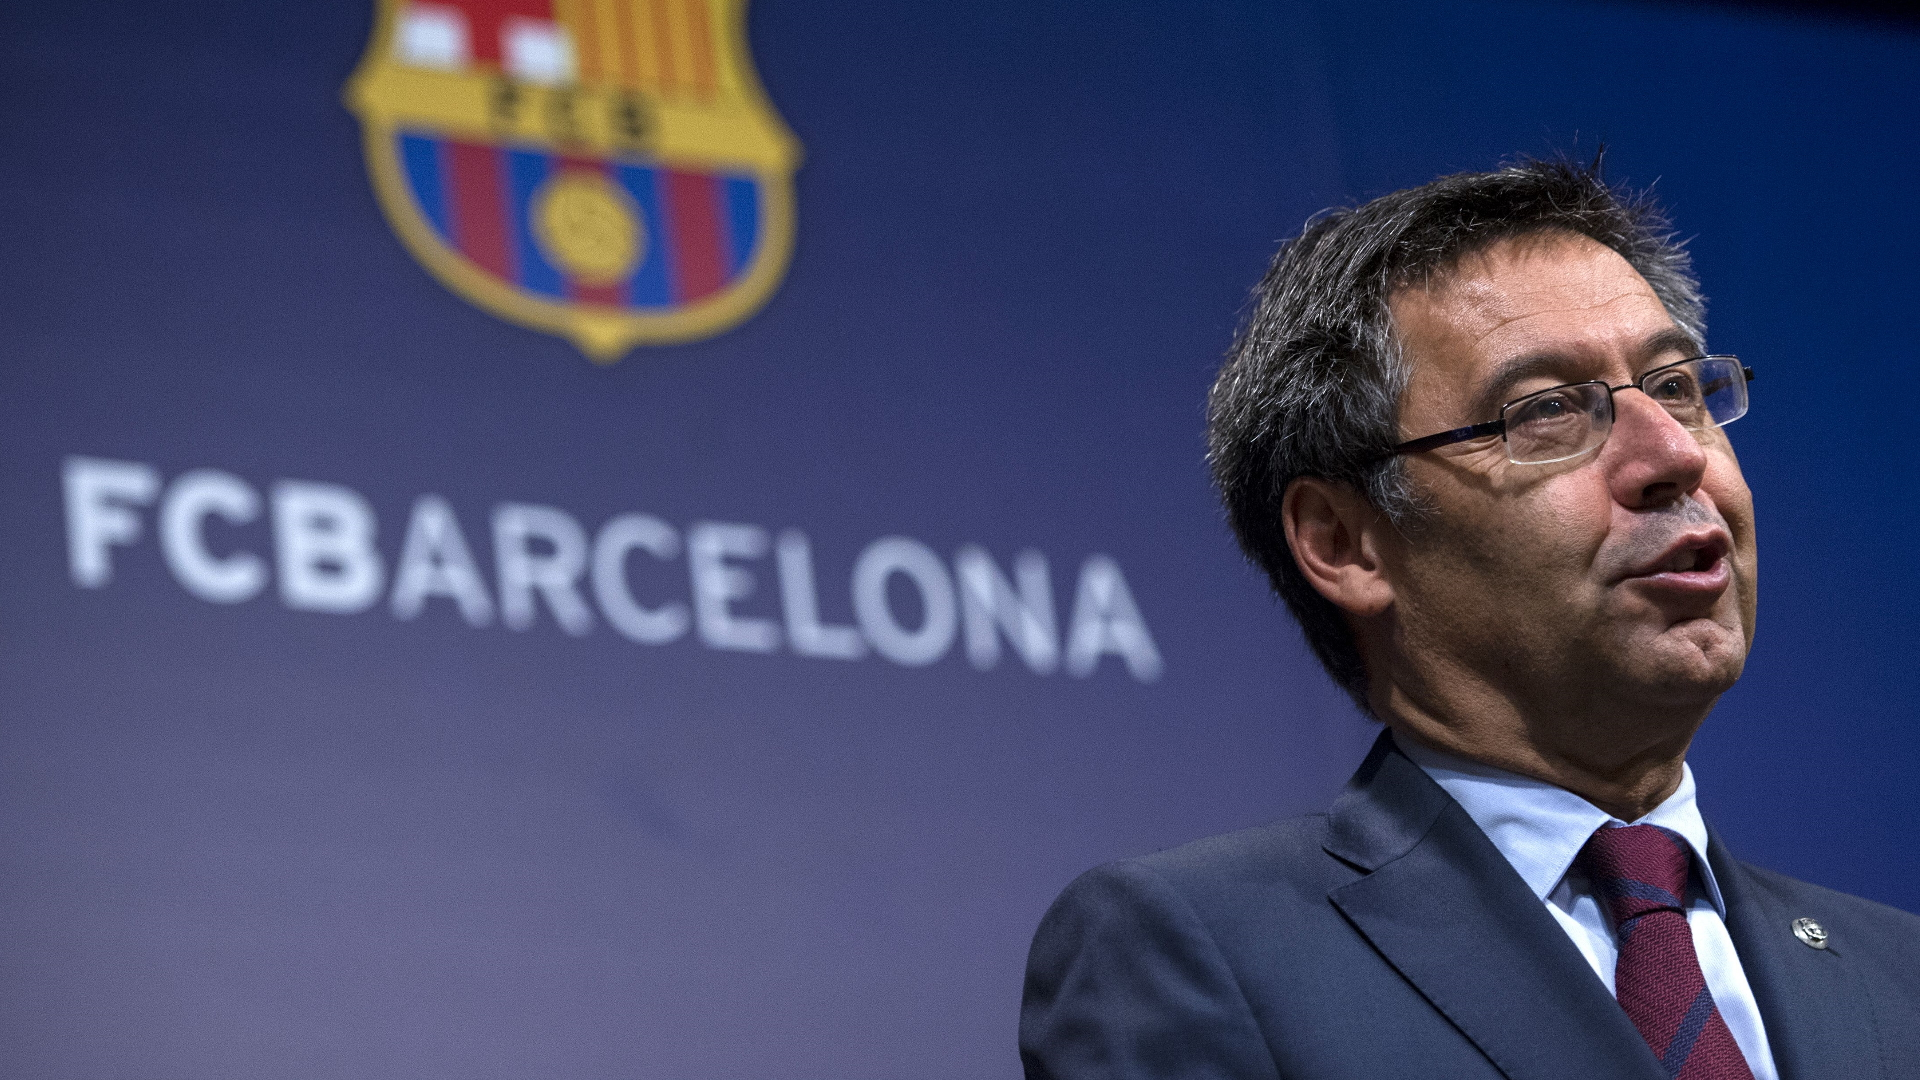 Barcelona deny corruption allegations levied by former vice president Rousaud